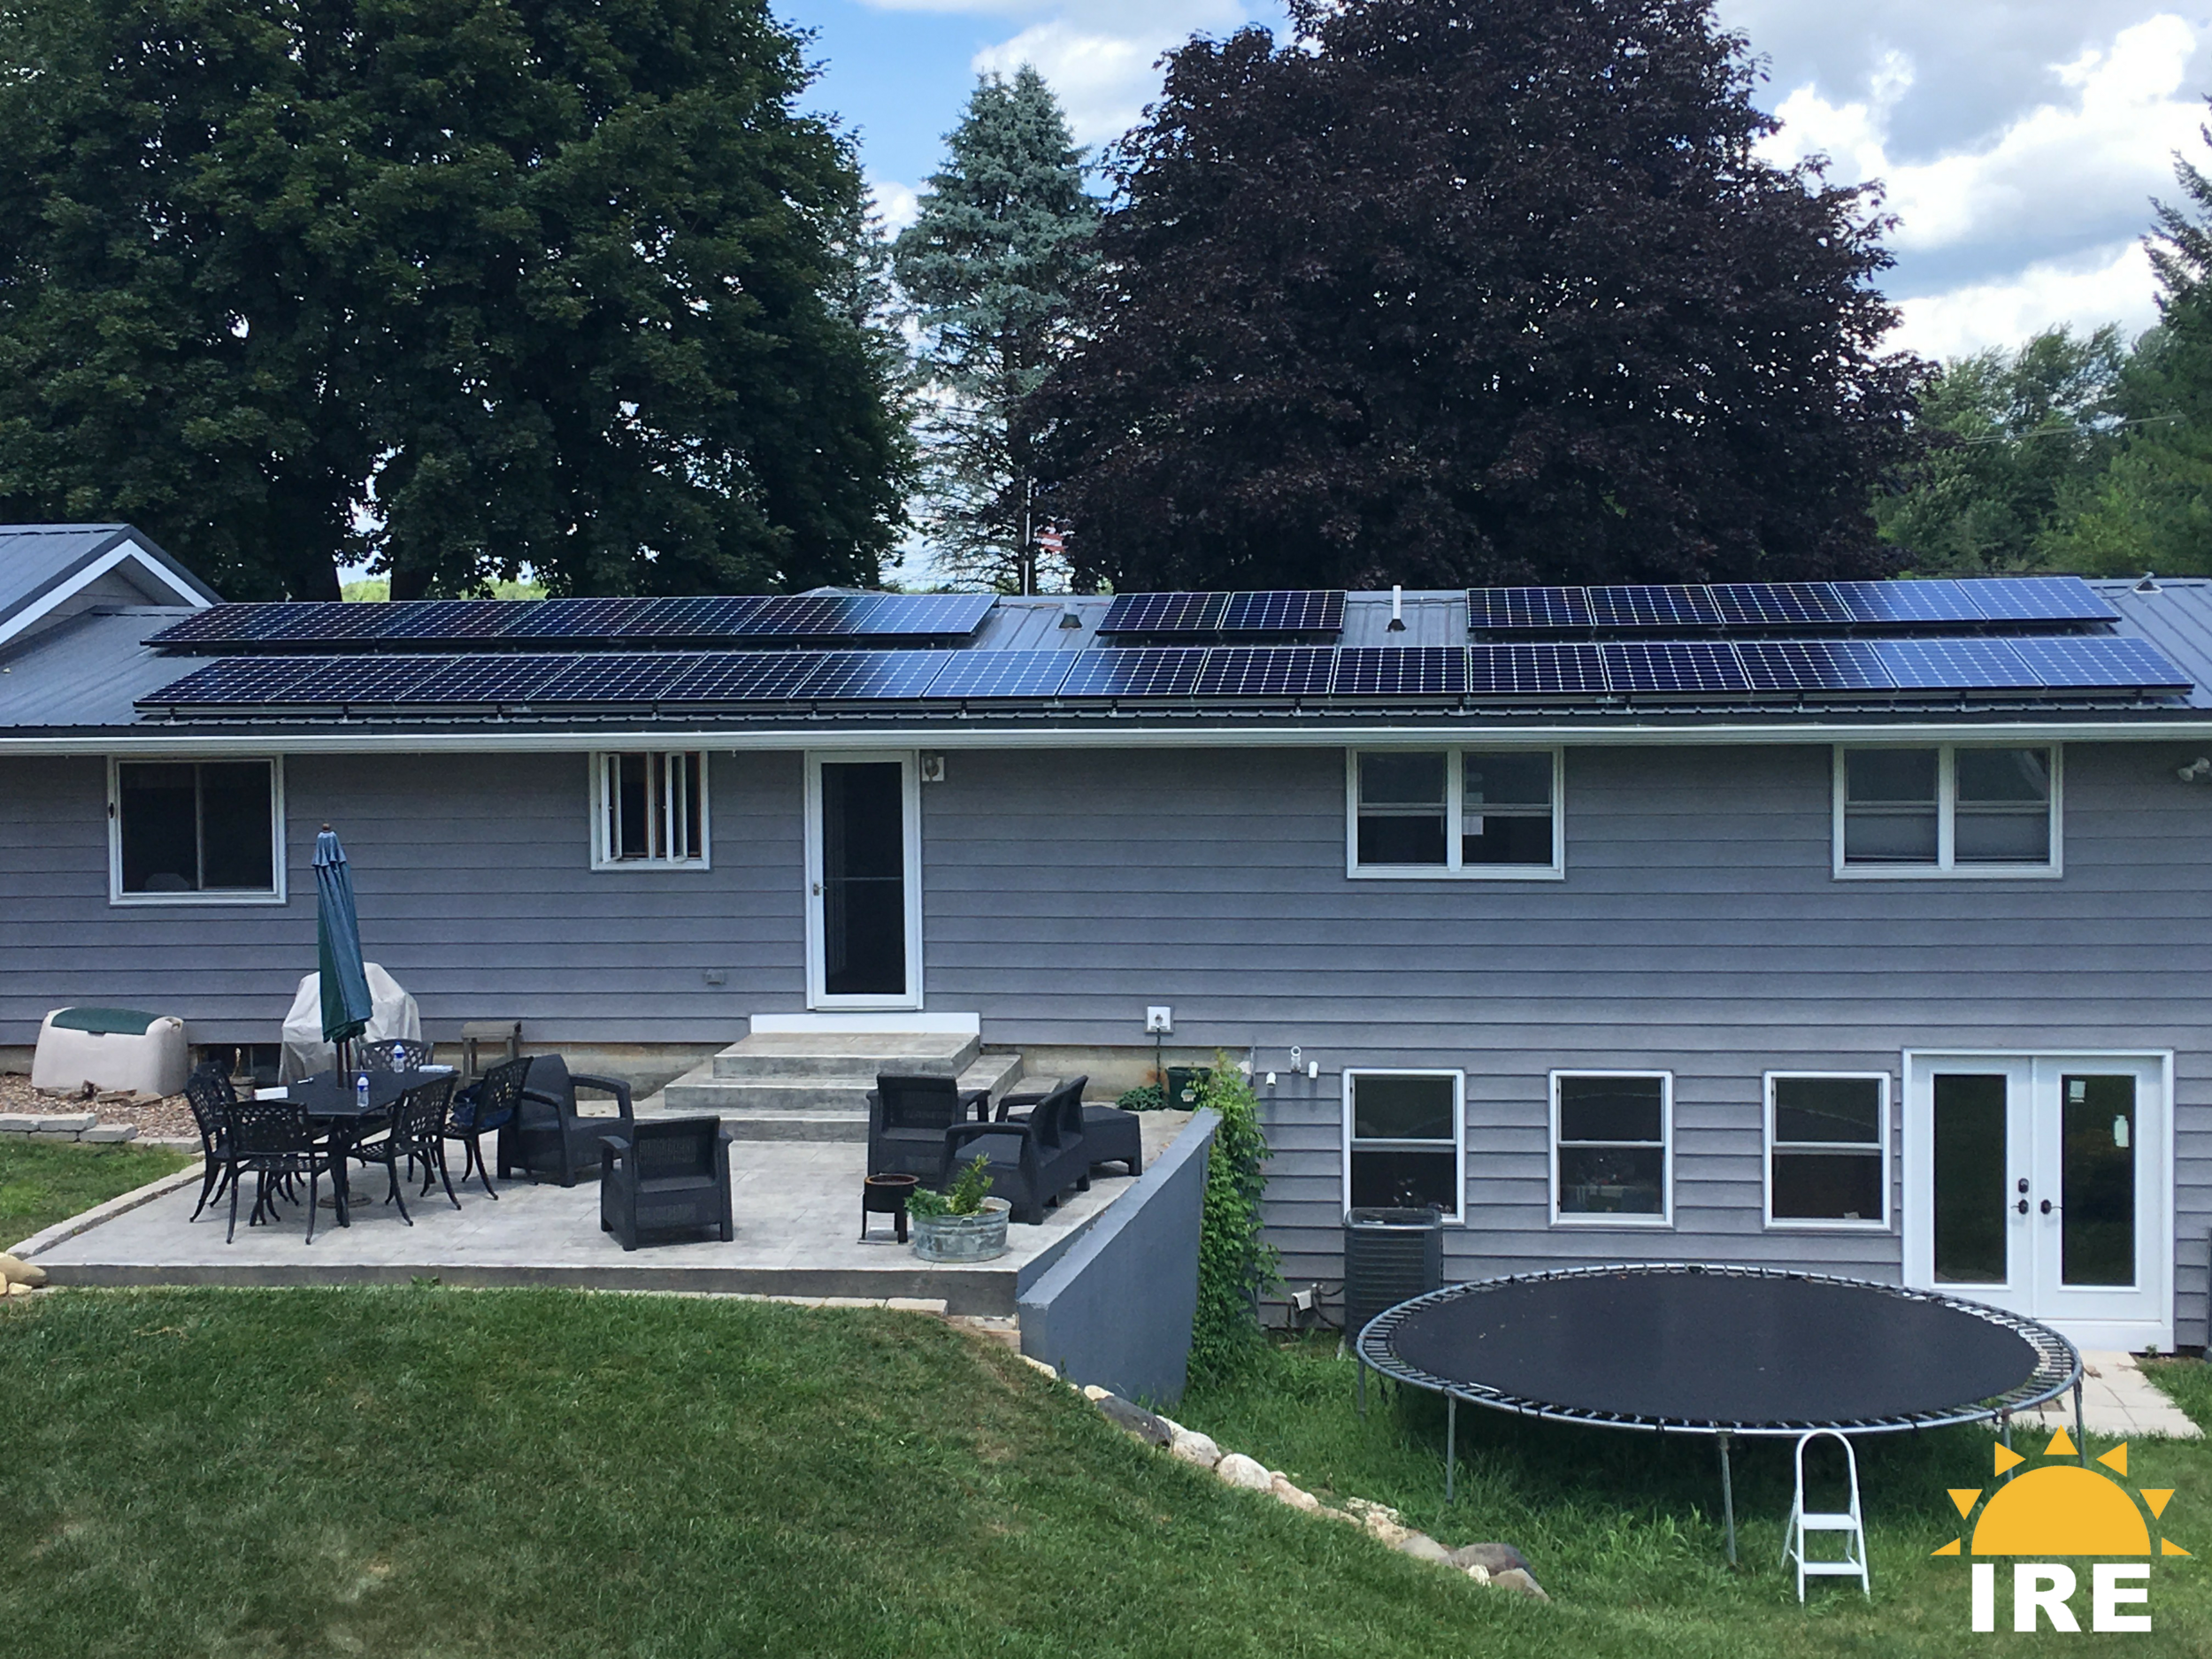 29 panel installation on a metal roof.